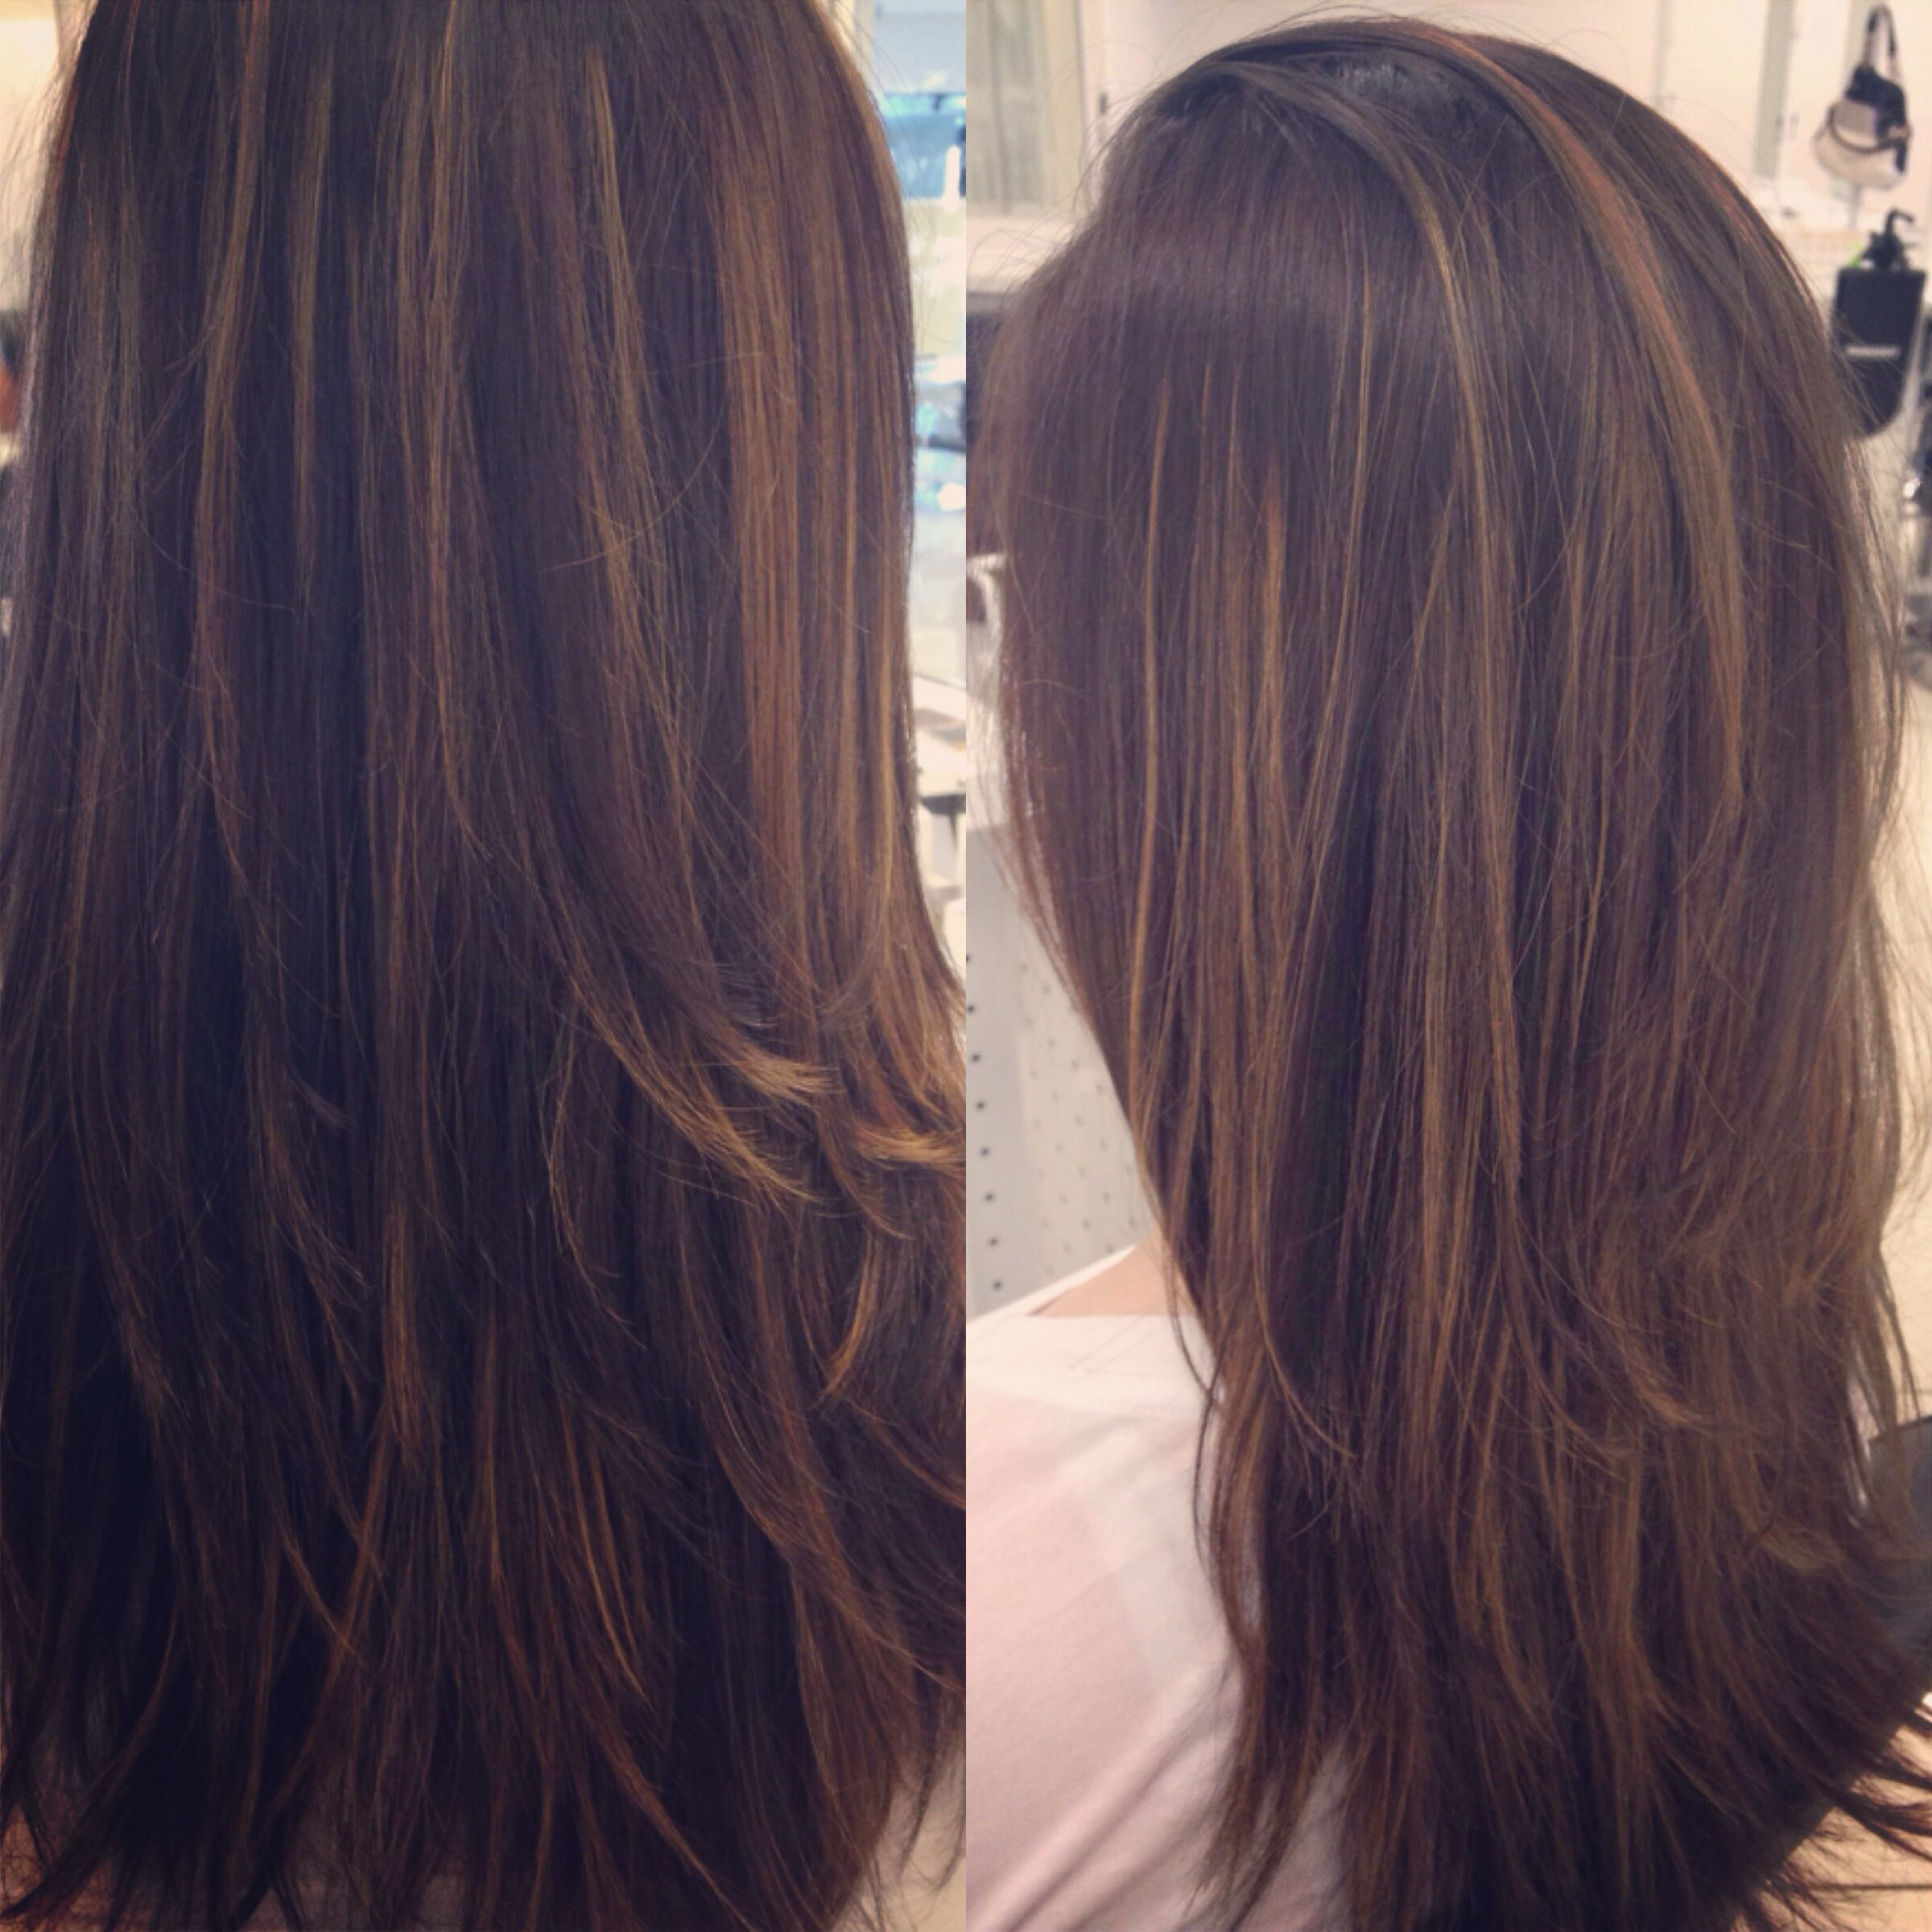 Pin By Brittany Gonzalez On Hair By Brittany Straight Hair Highlights Hair Carmel Hair